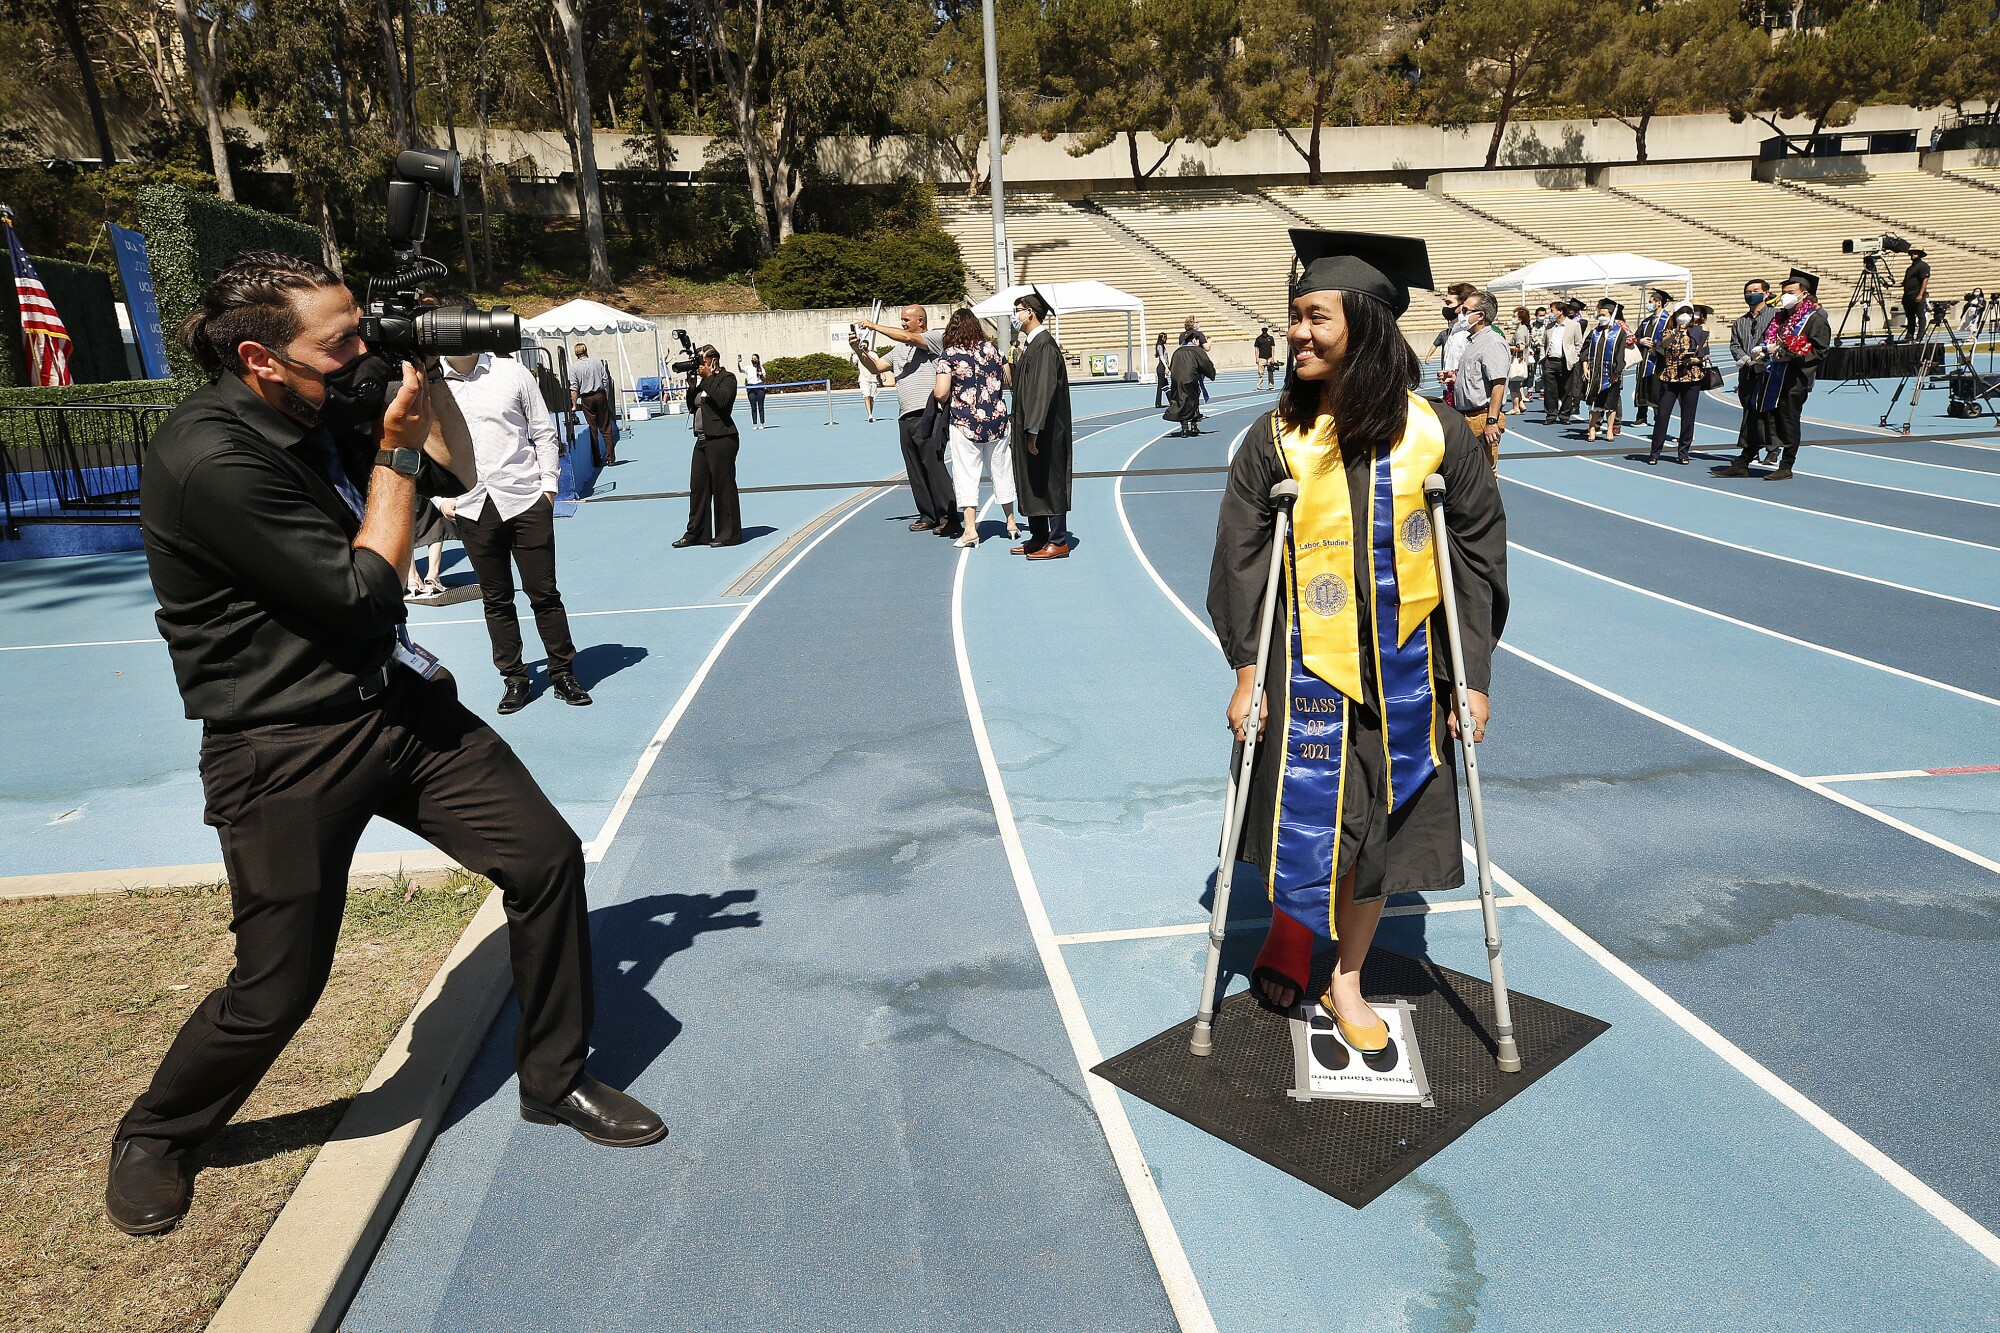 Sophia Bautista, 22, graduating with a degree in Political Science and Labor Studies is on crutches